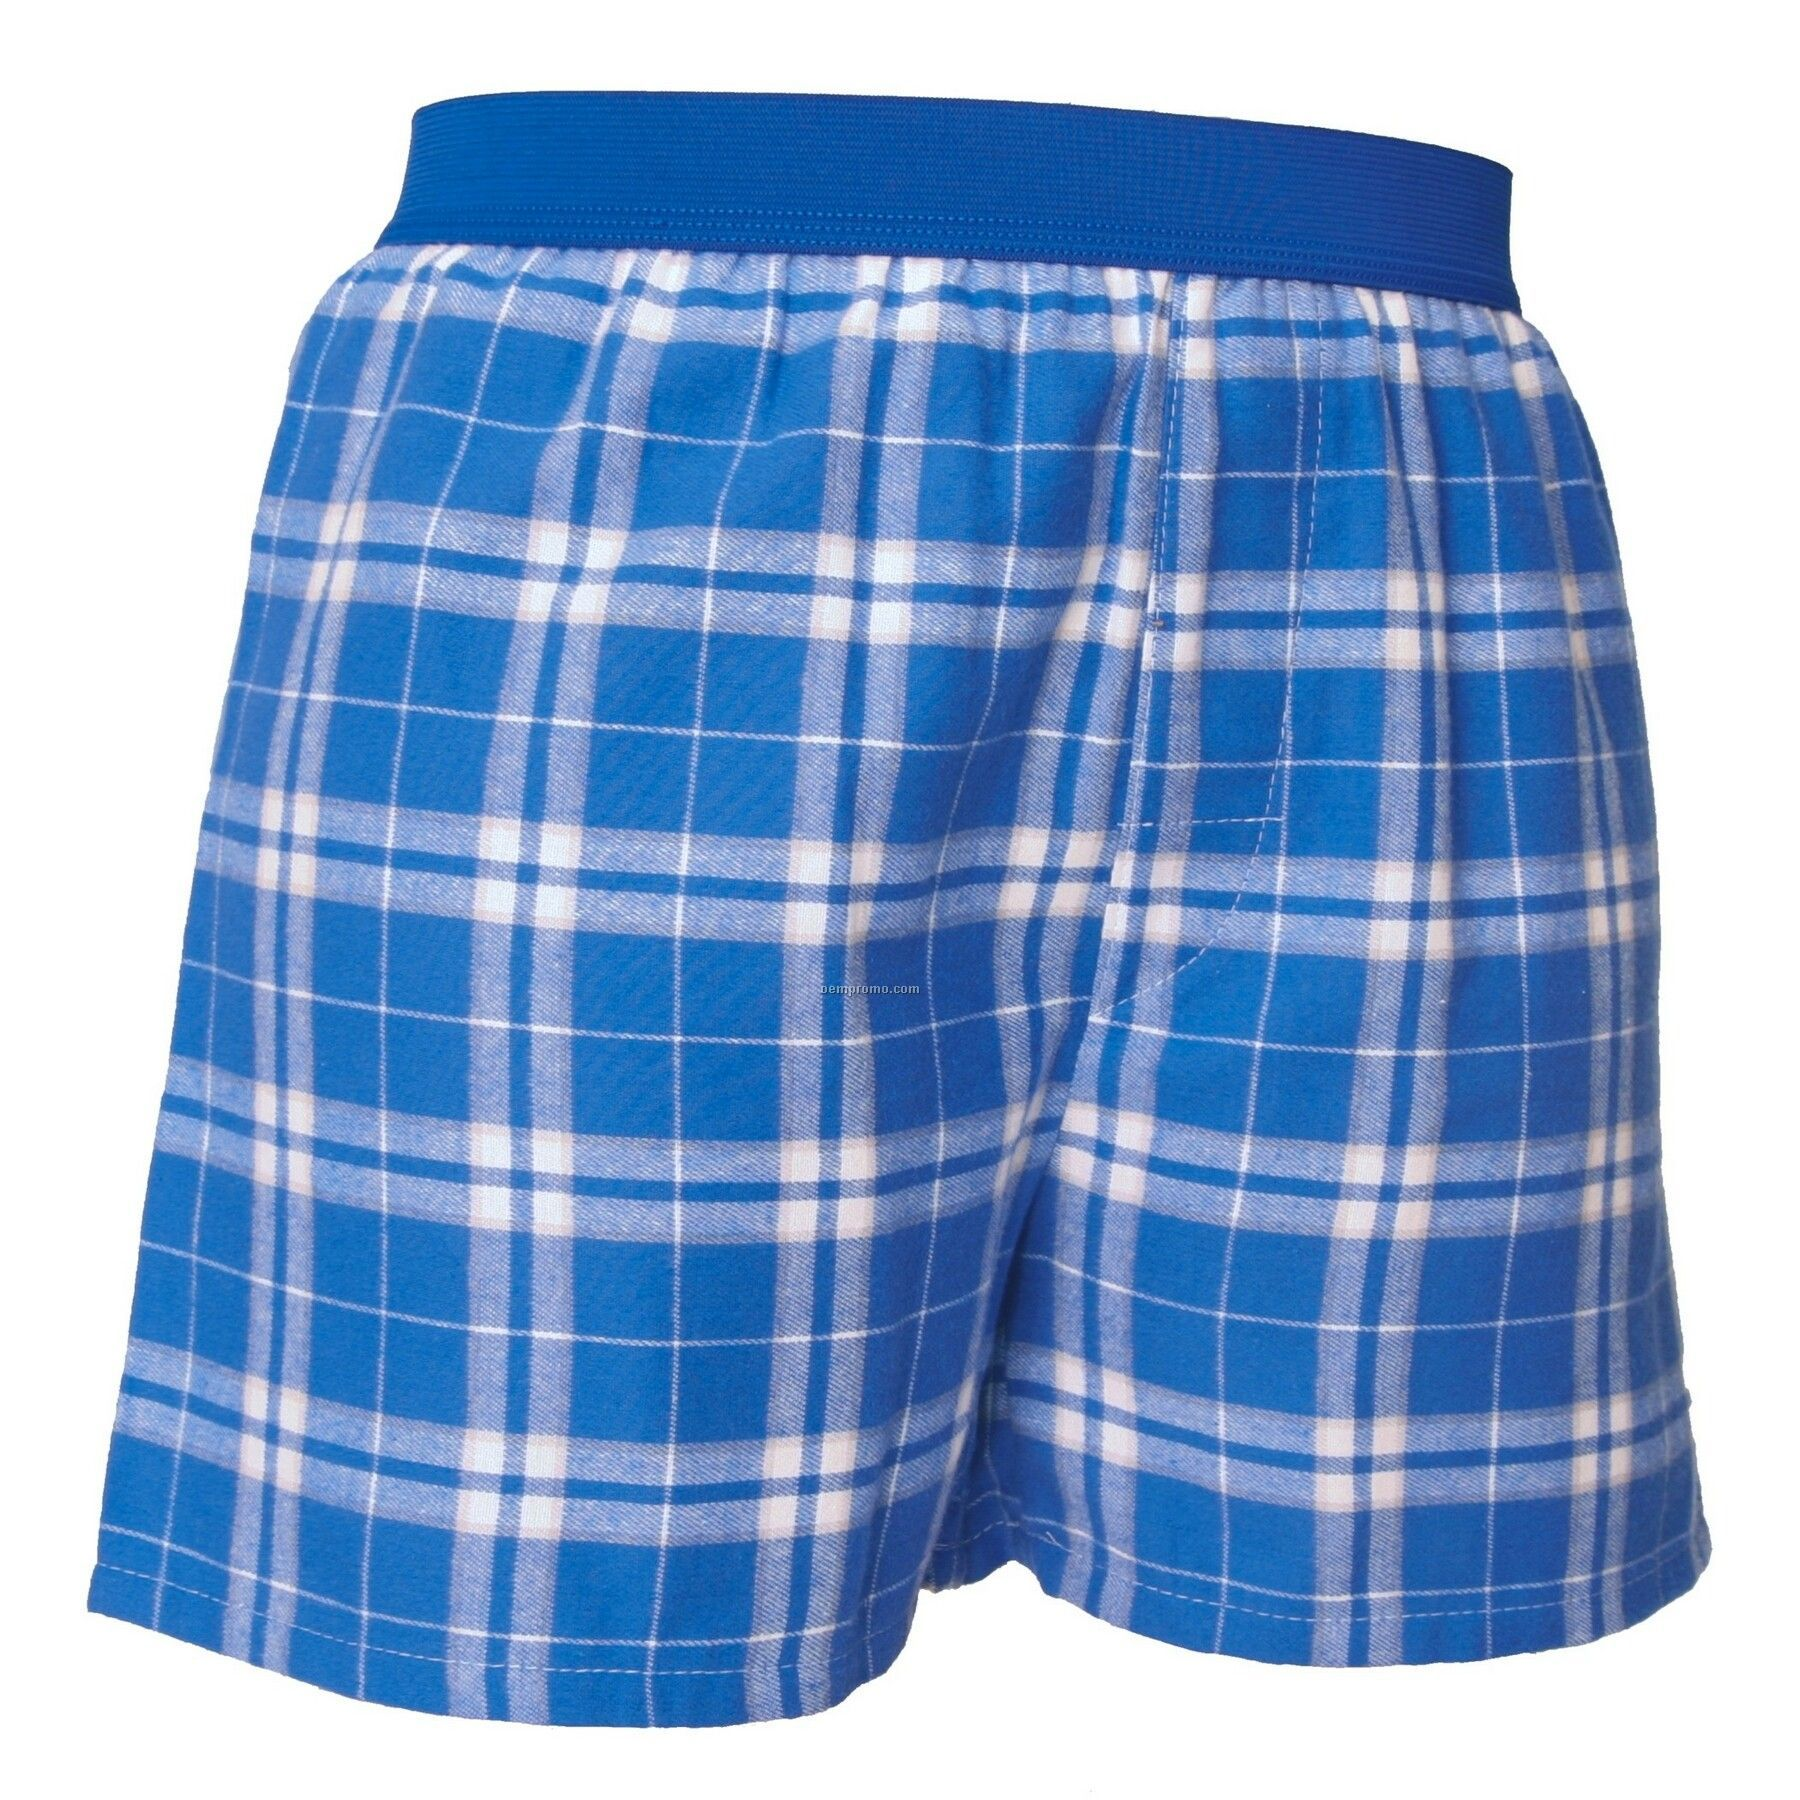 Youth Royal Blue/Silver Plaid Classic Boxer Short